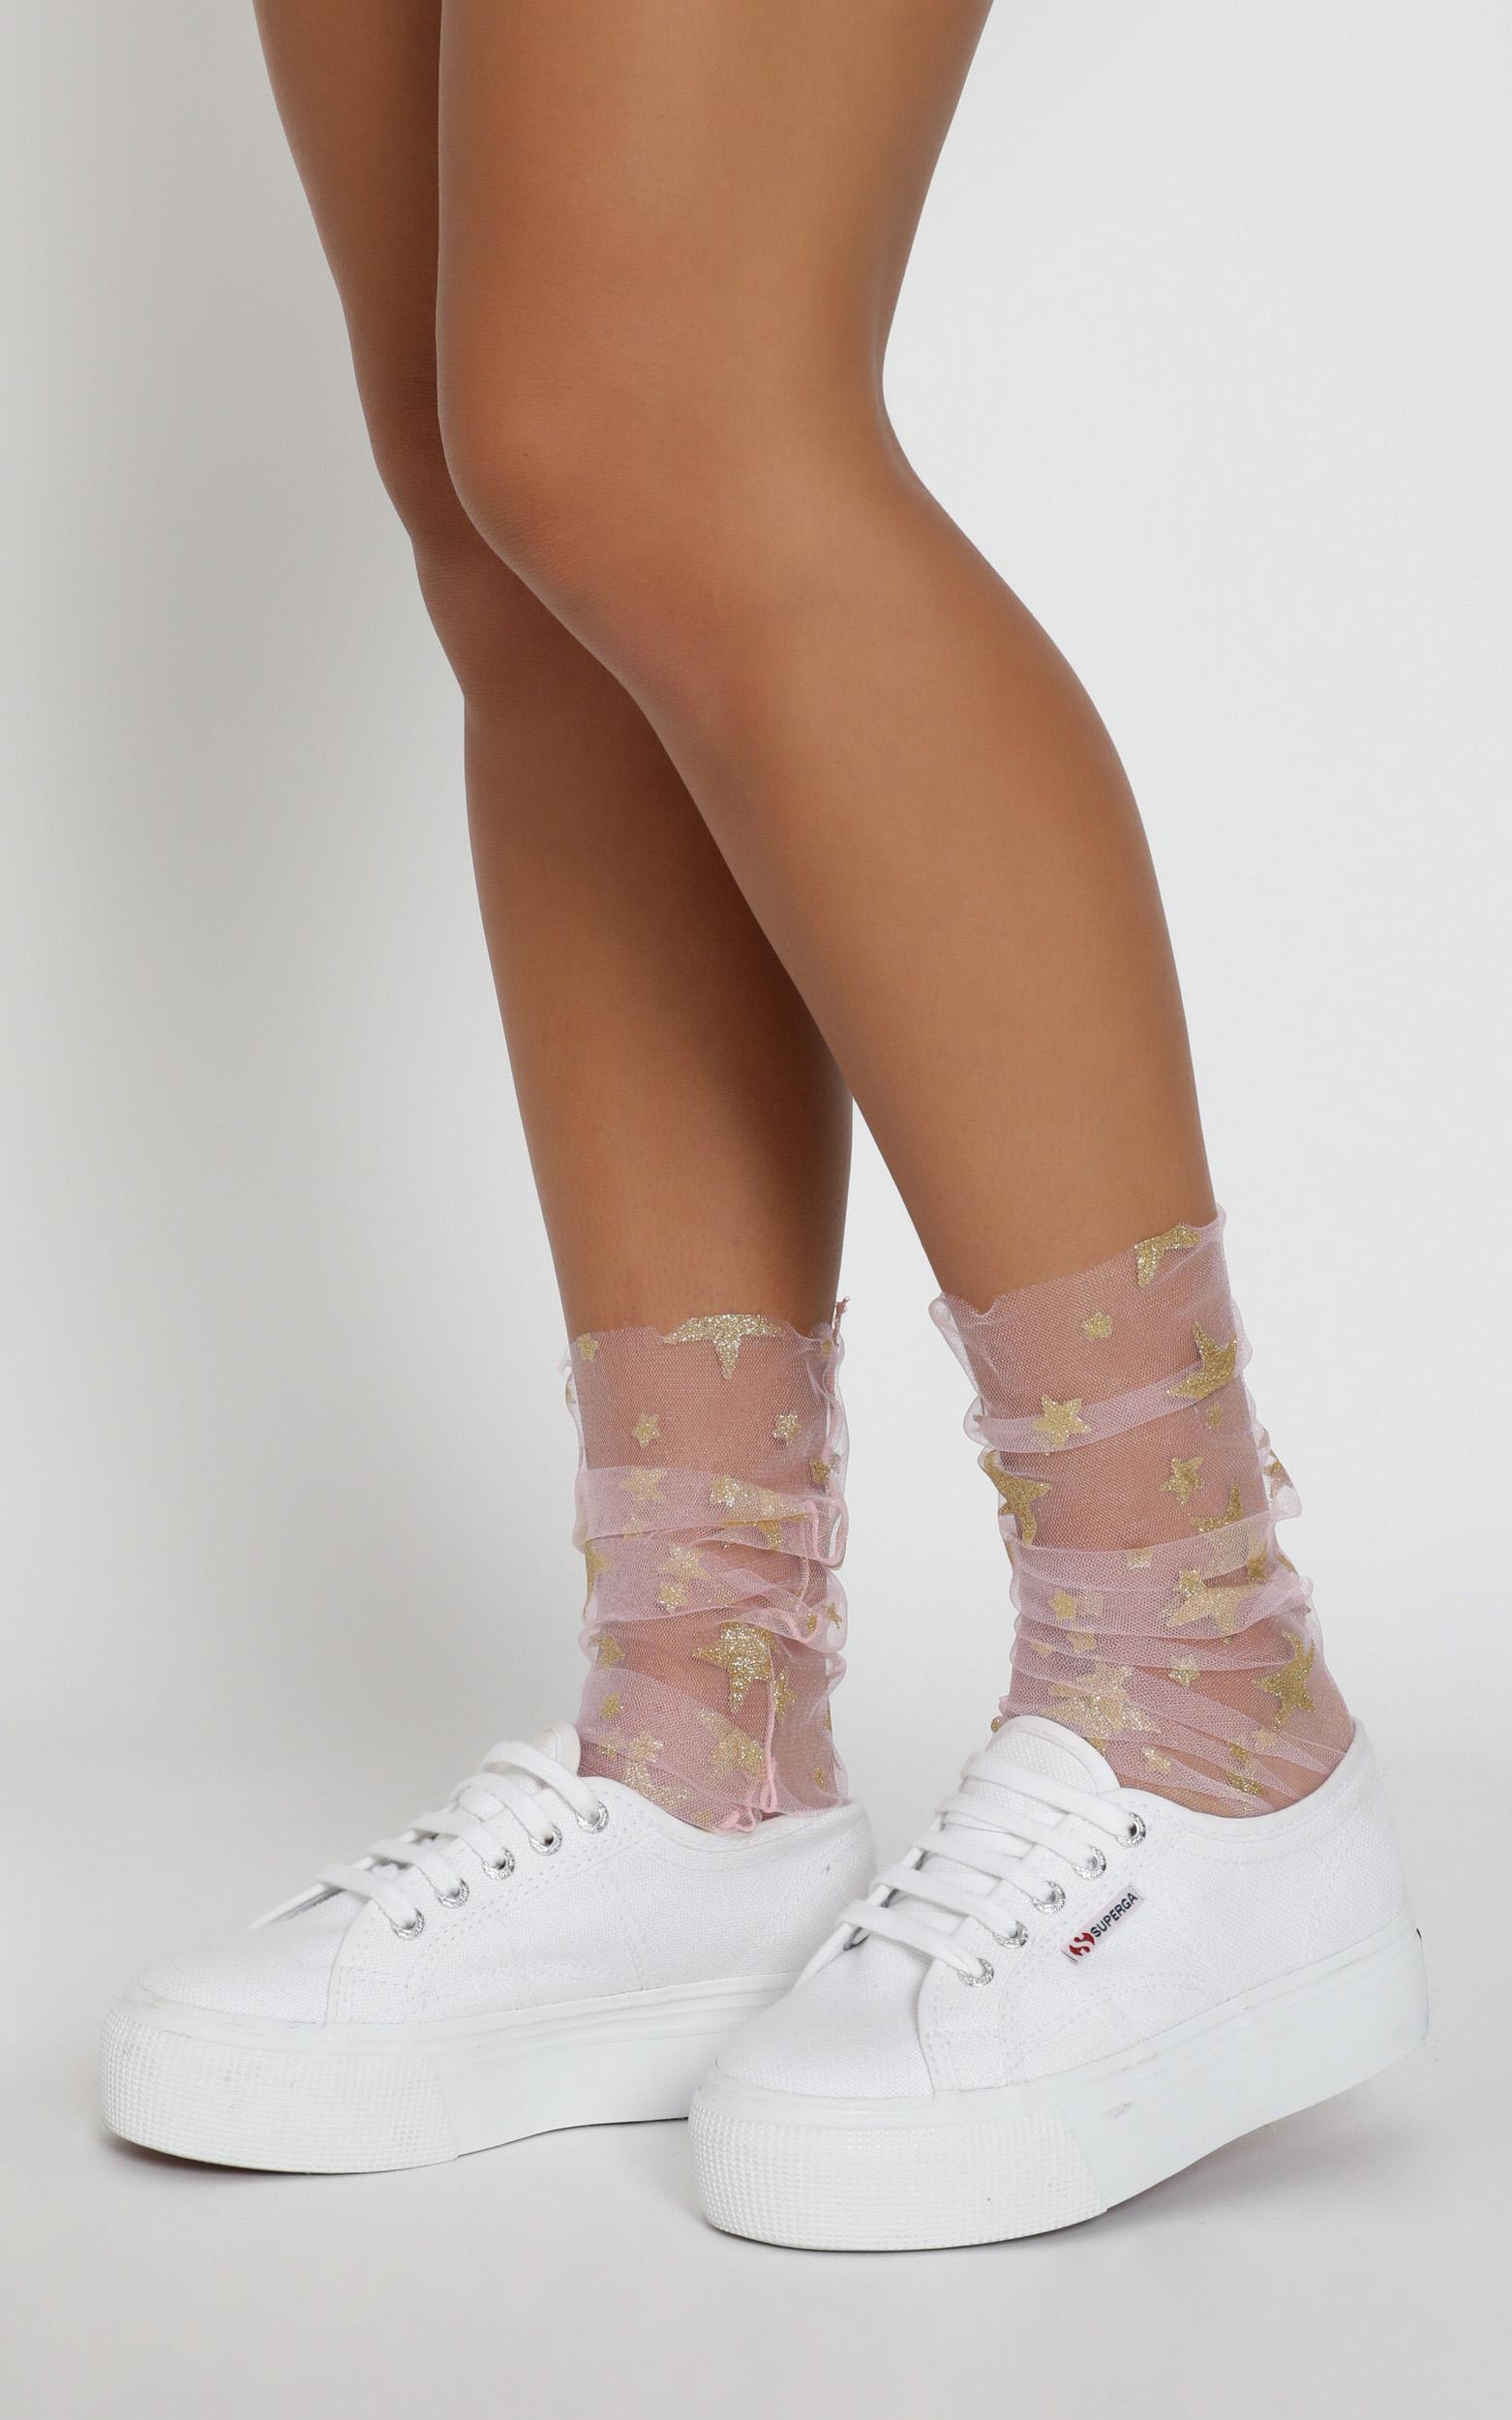 One Love Glitter Star Socks In Pink, , hi-res image number null